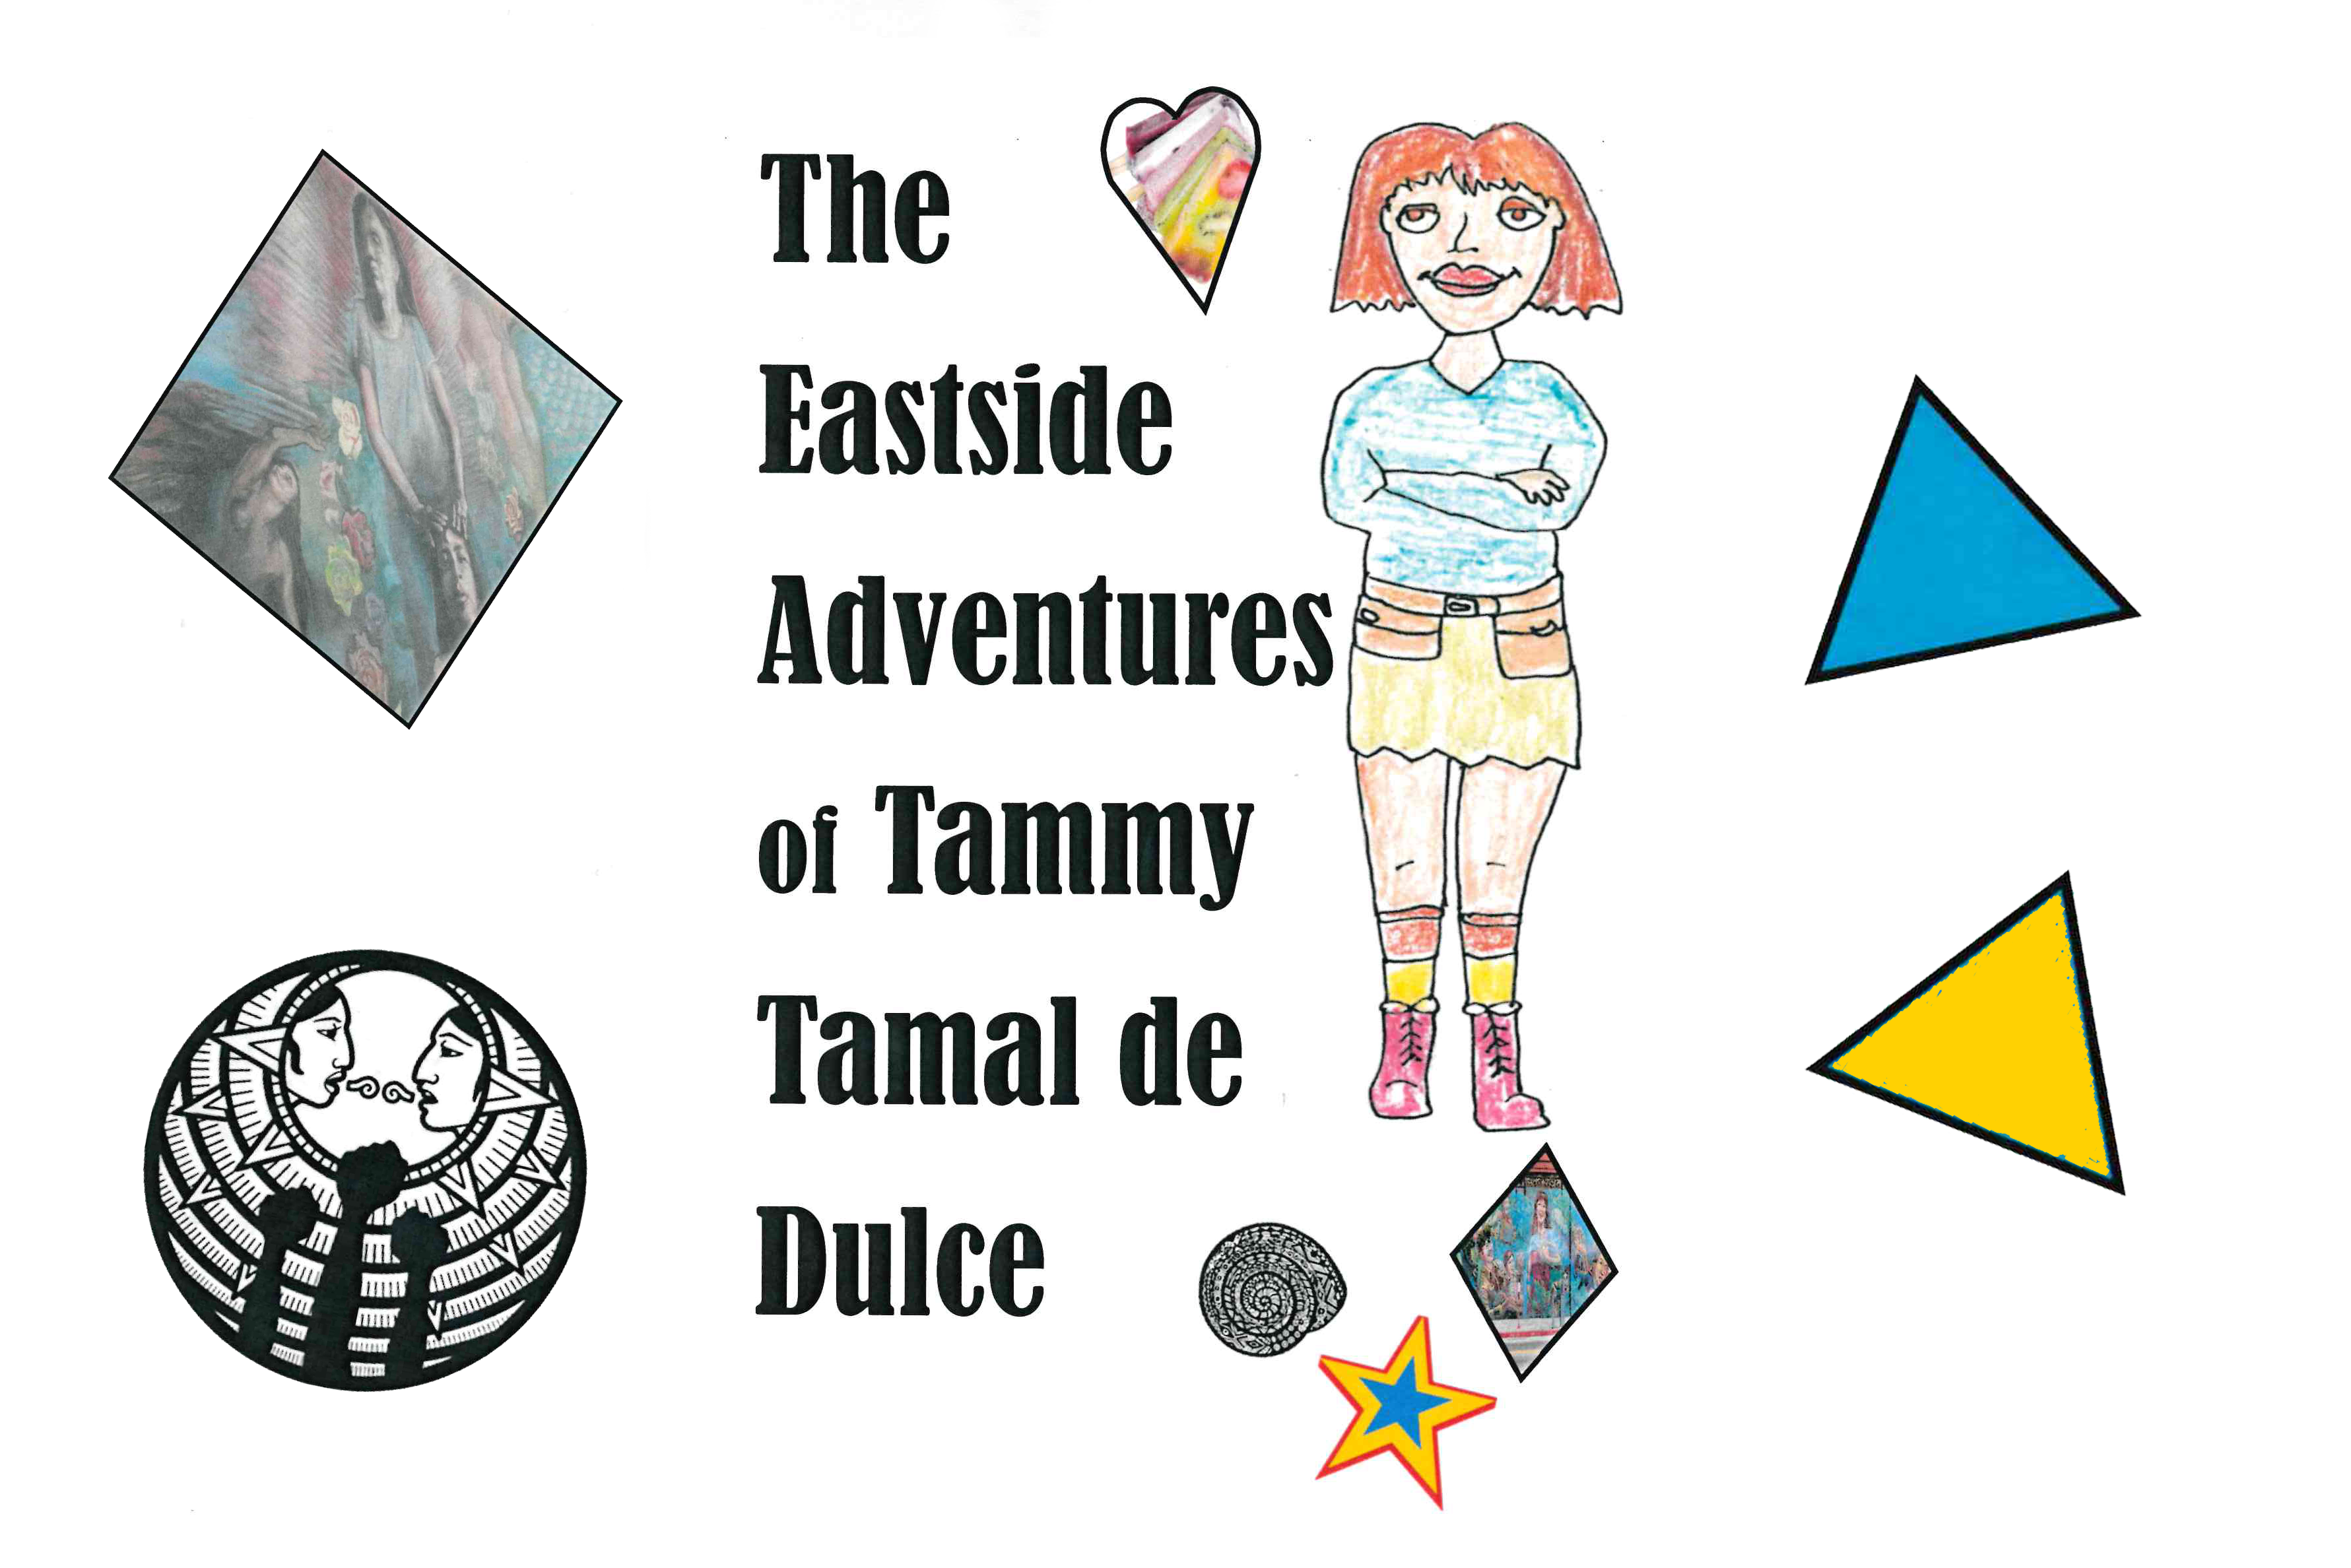 The Eastside Adventures of Tammy Tamal de Dulce